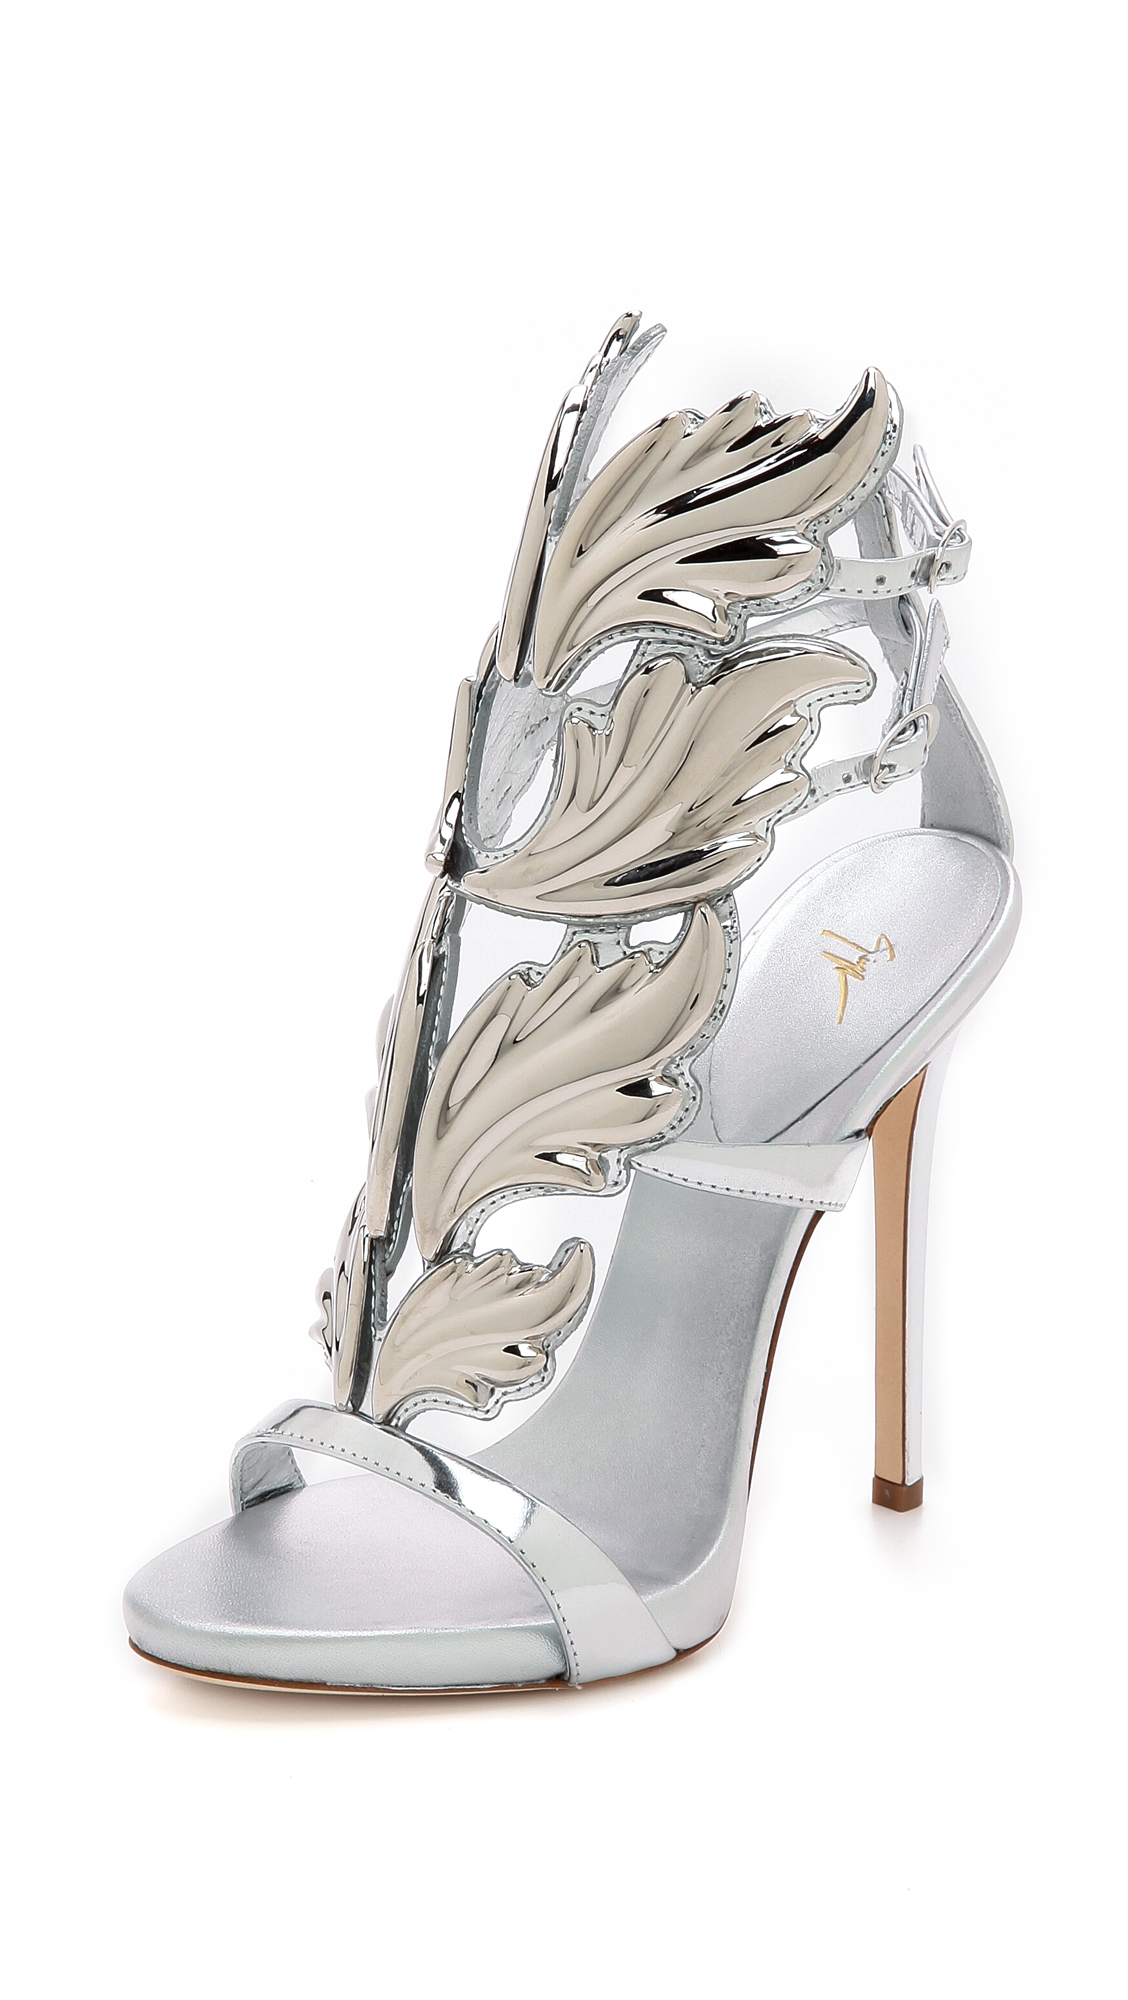 a1c5001be8c Buy giuseppe zanotti Metal Wing Sandals (silver) 13097522 for ...